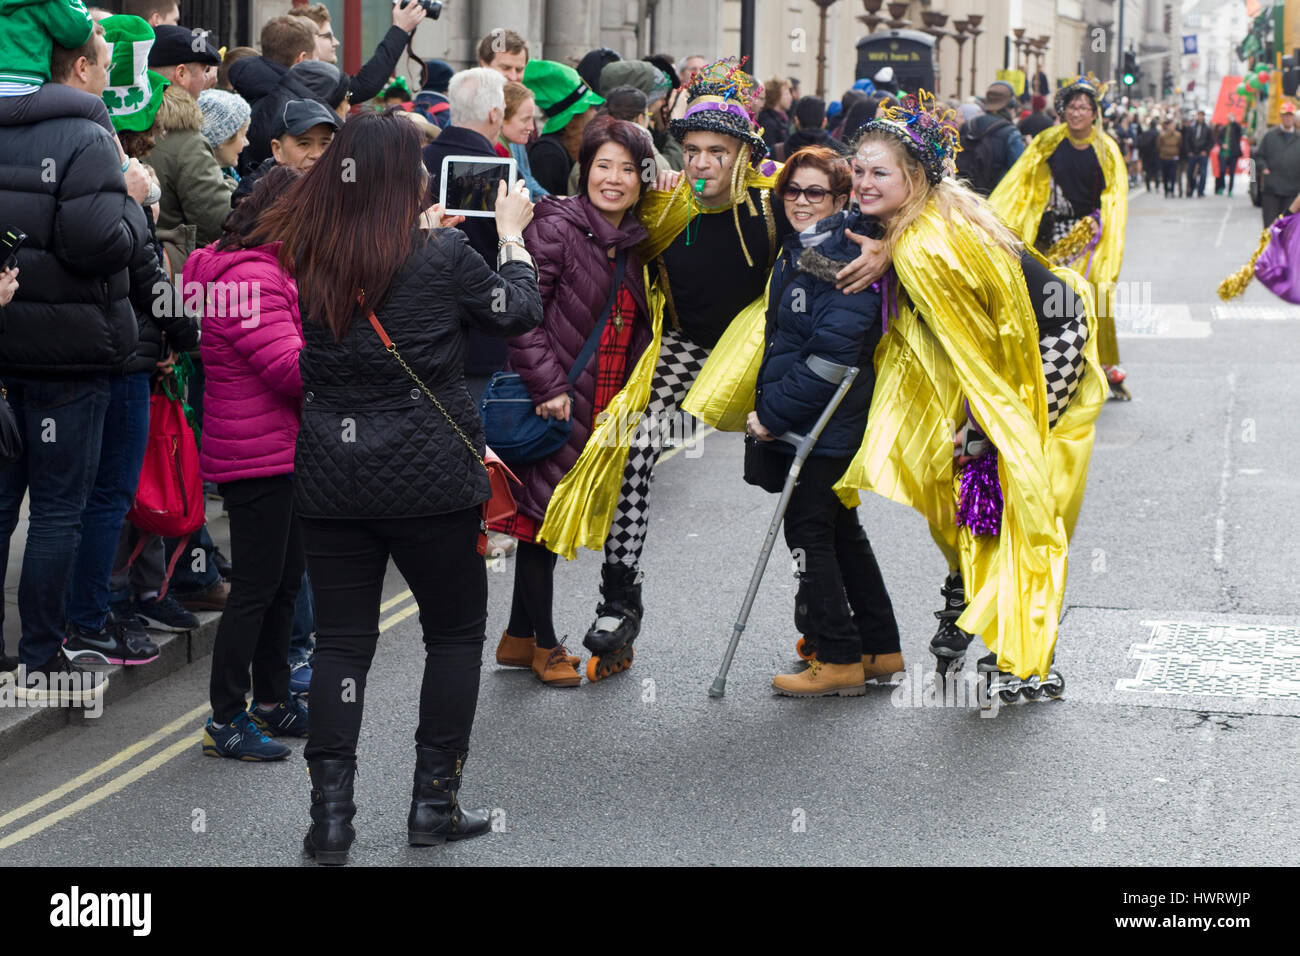 Chinese tourists interrupting the Parade to take pictures - Stock Image